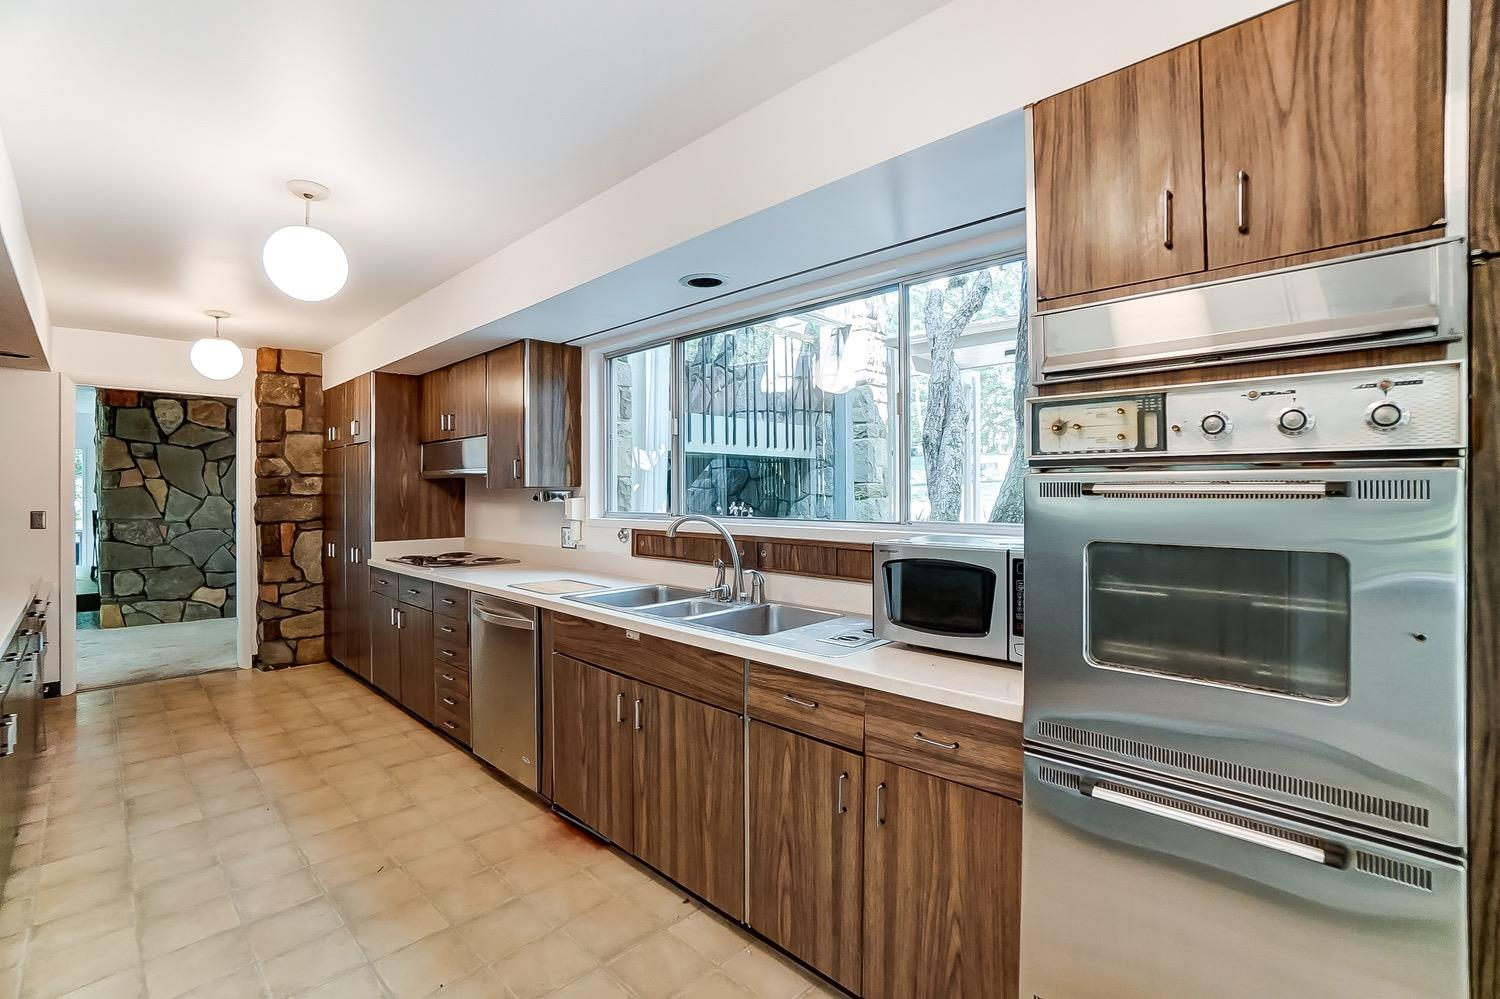 The time capsule kitchen features the original custom Mueller Company of Madeira wood grained laminate cabinets, many of the original stainless steel appliances plus a Nutone exhaust hood and remnants of the Nutone Food Center. What an incredible picture window above the sink!